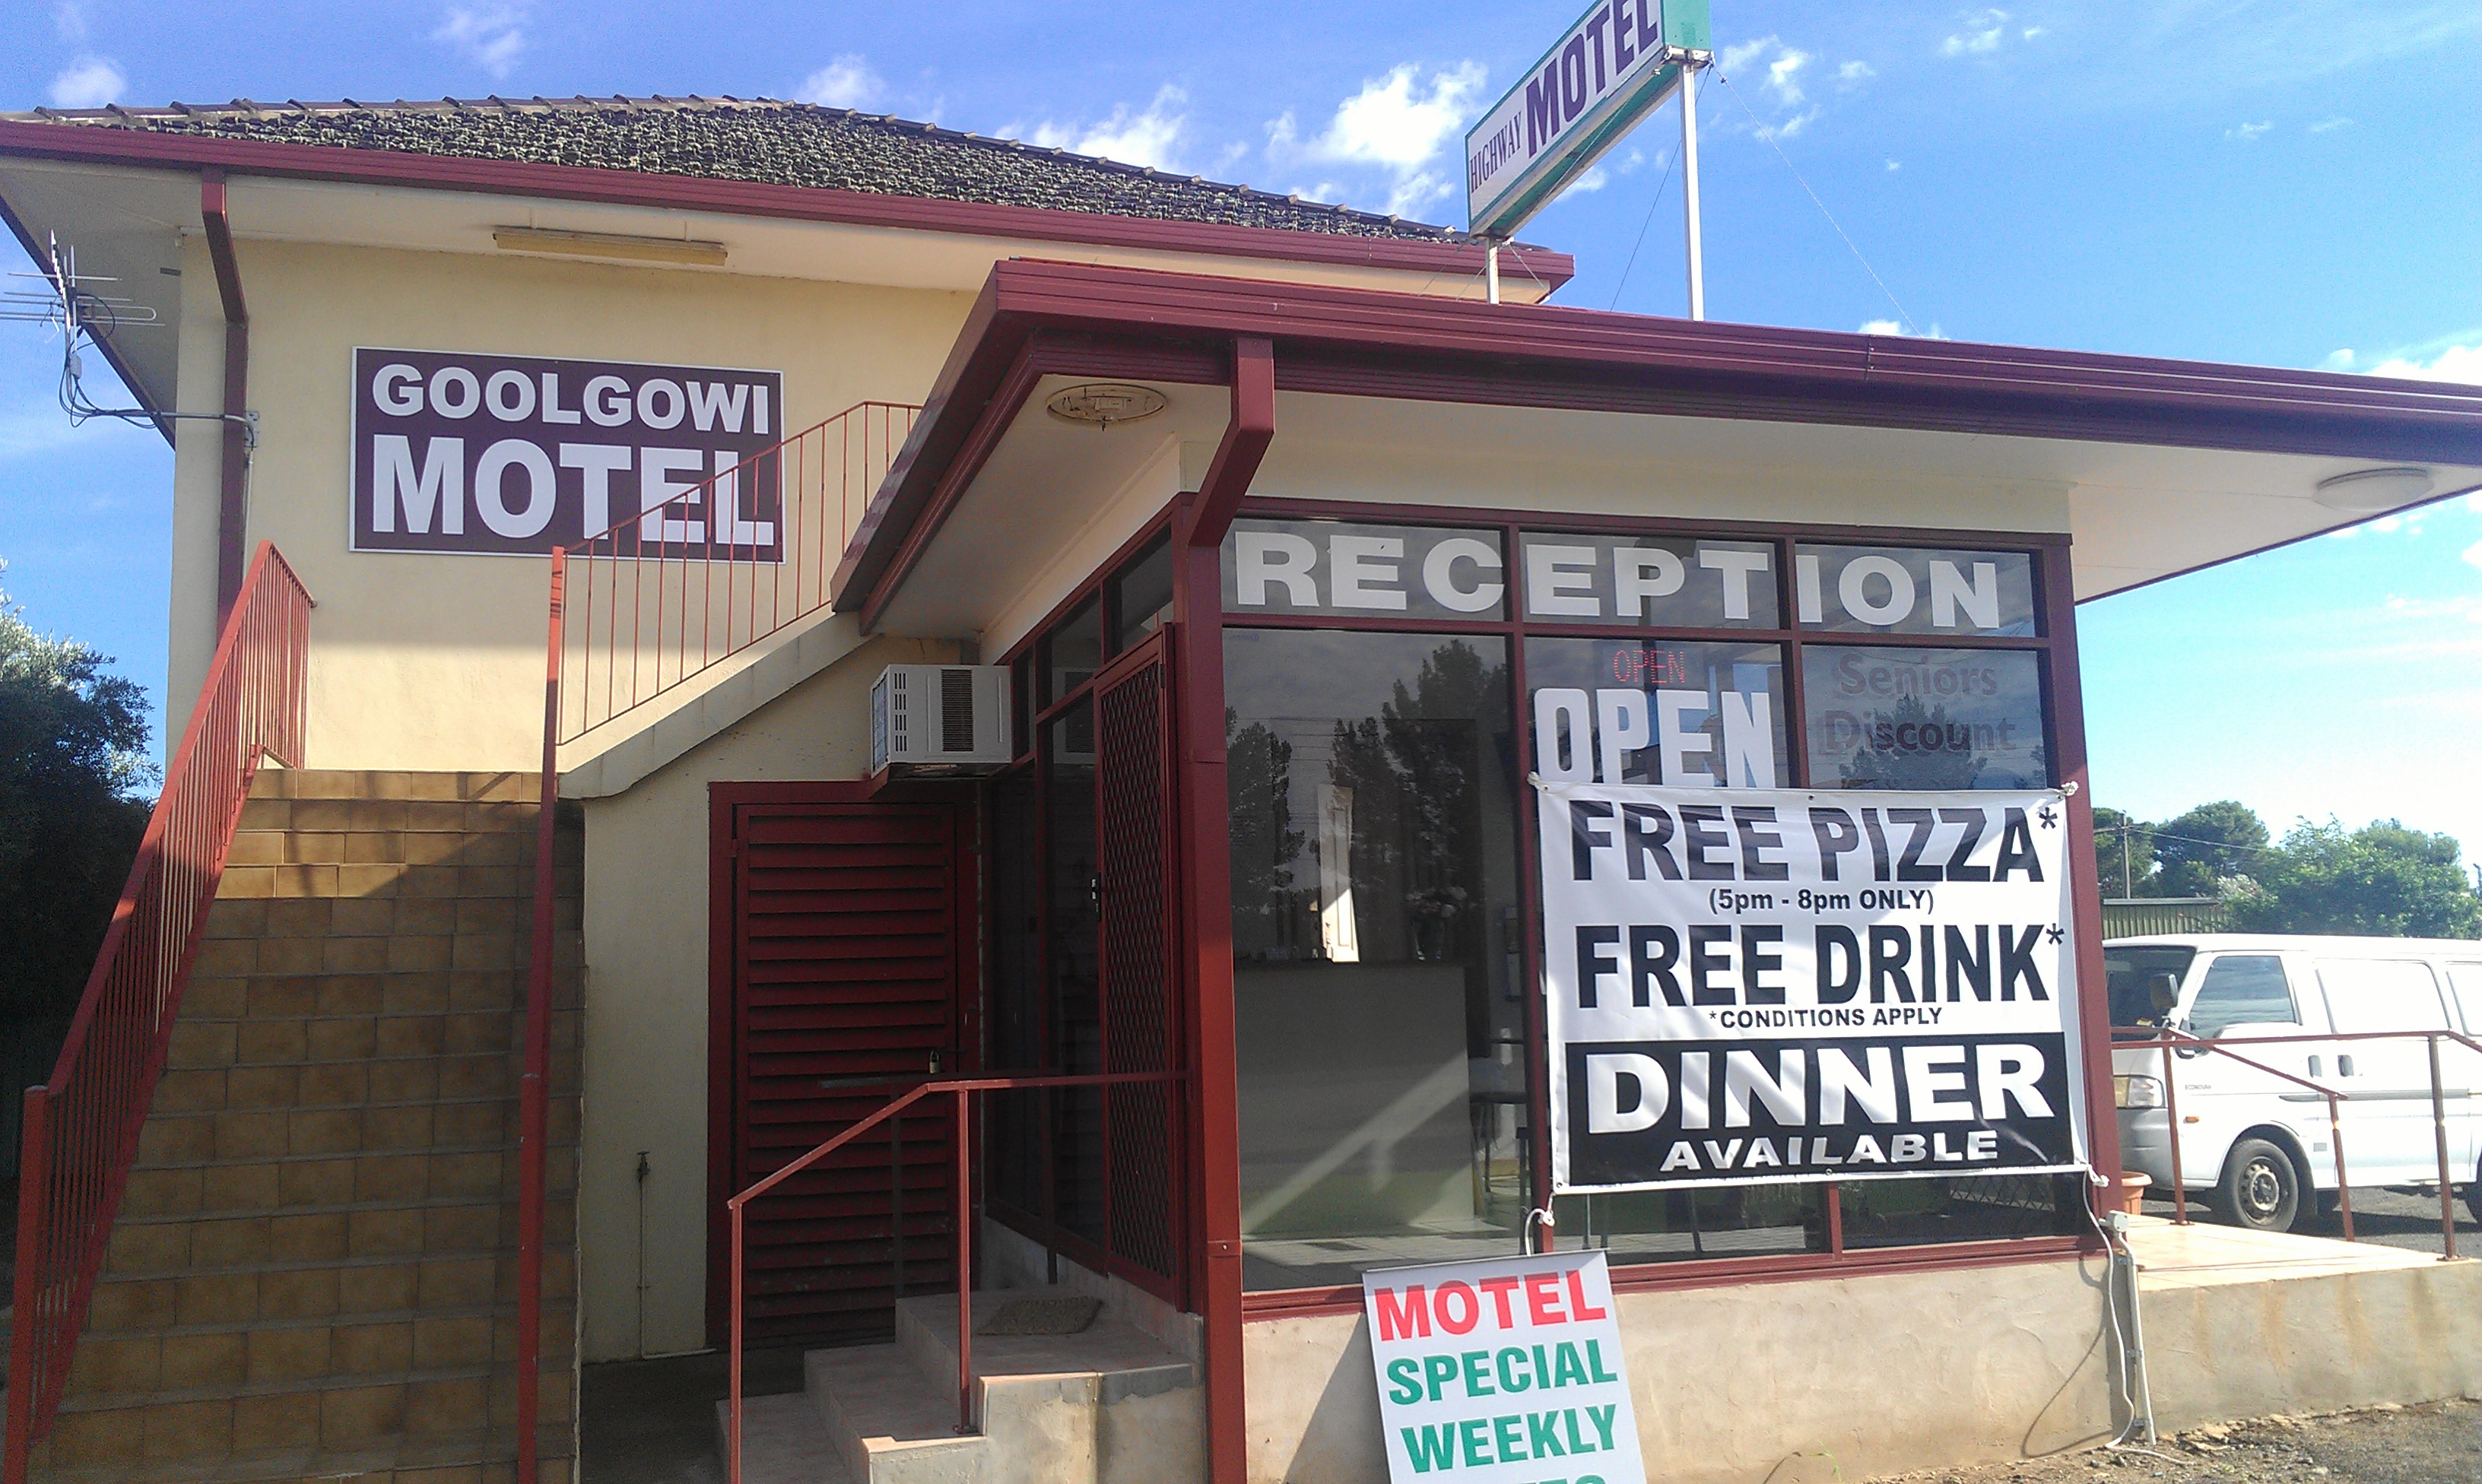 Royal Mail Hotel Goolgowi - Accommodation Melbourne